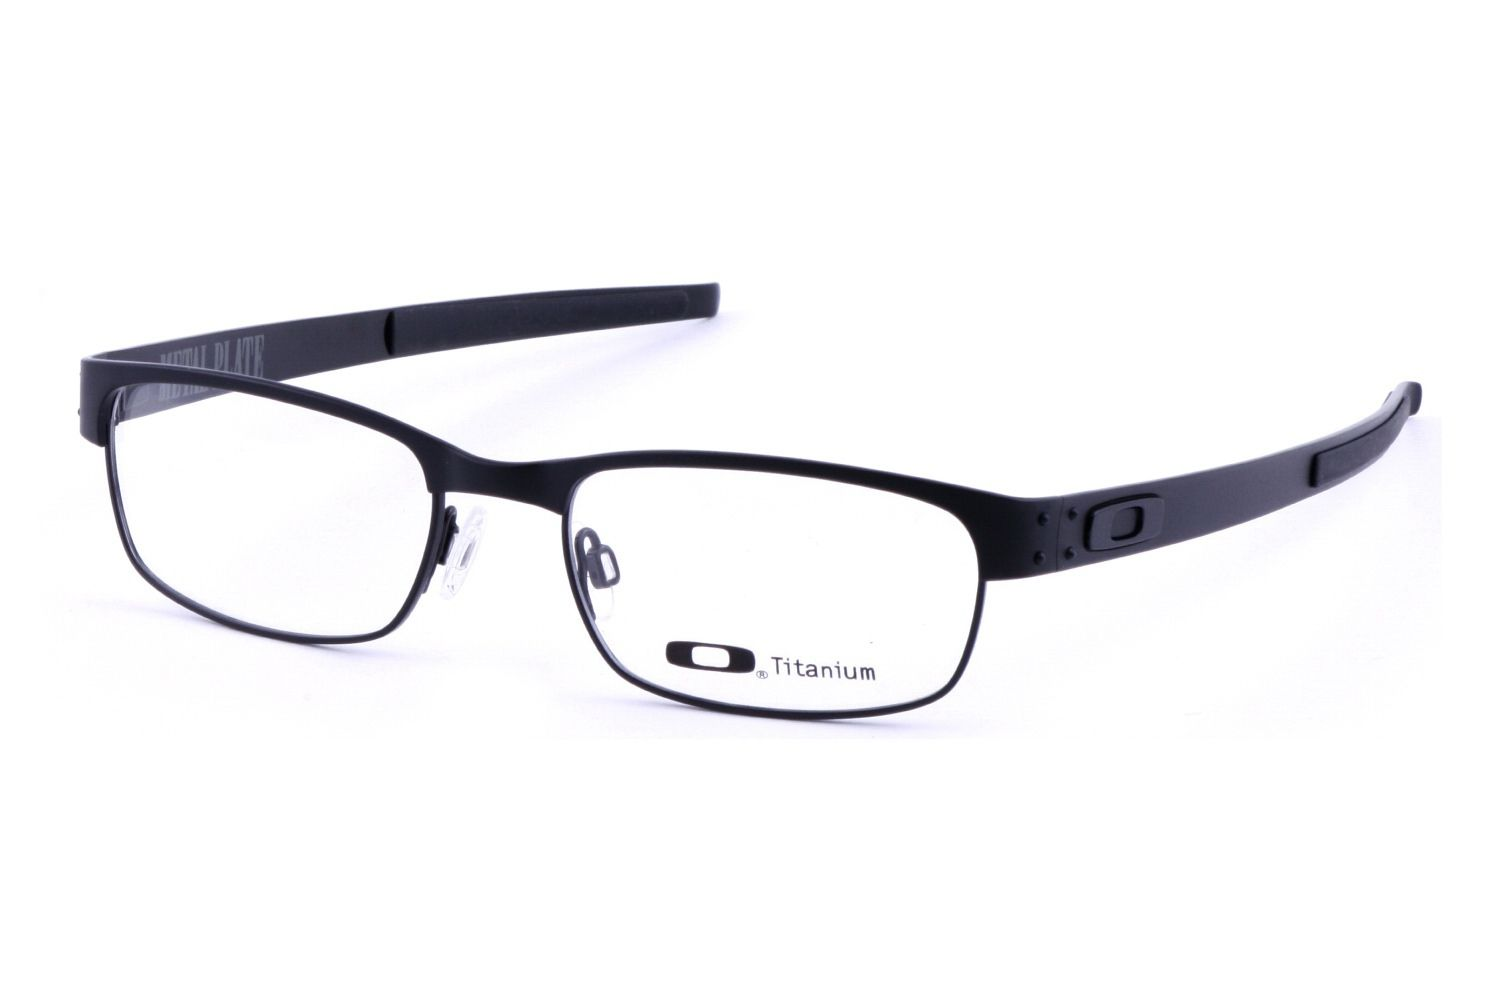 oakley frames glasses